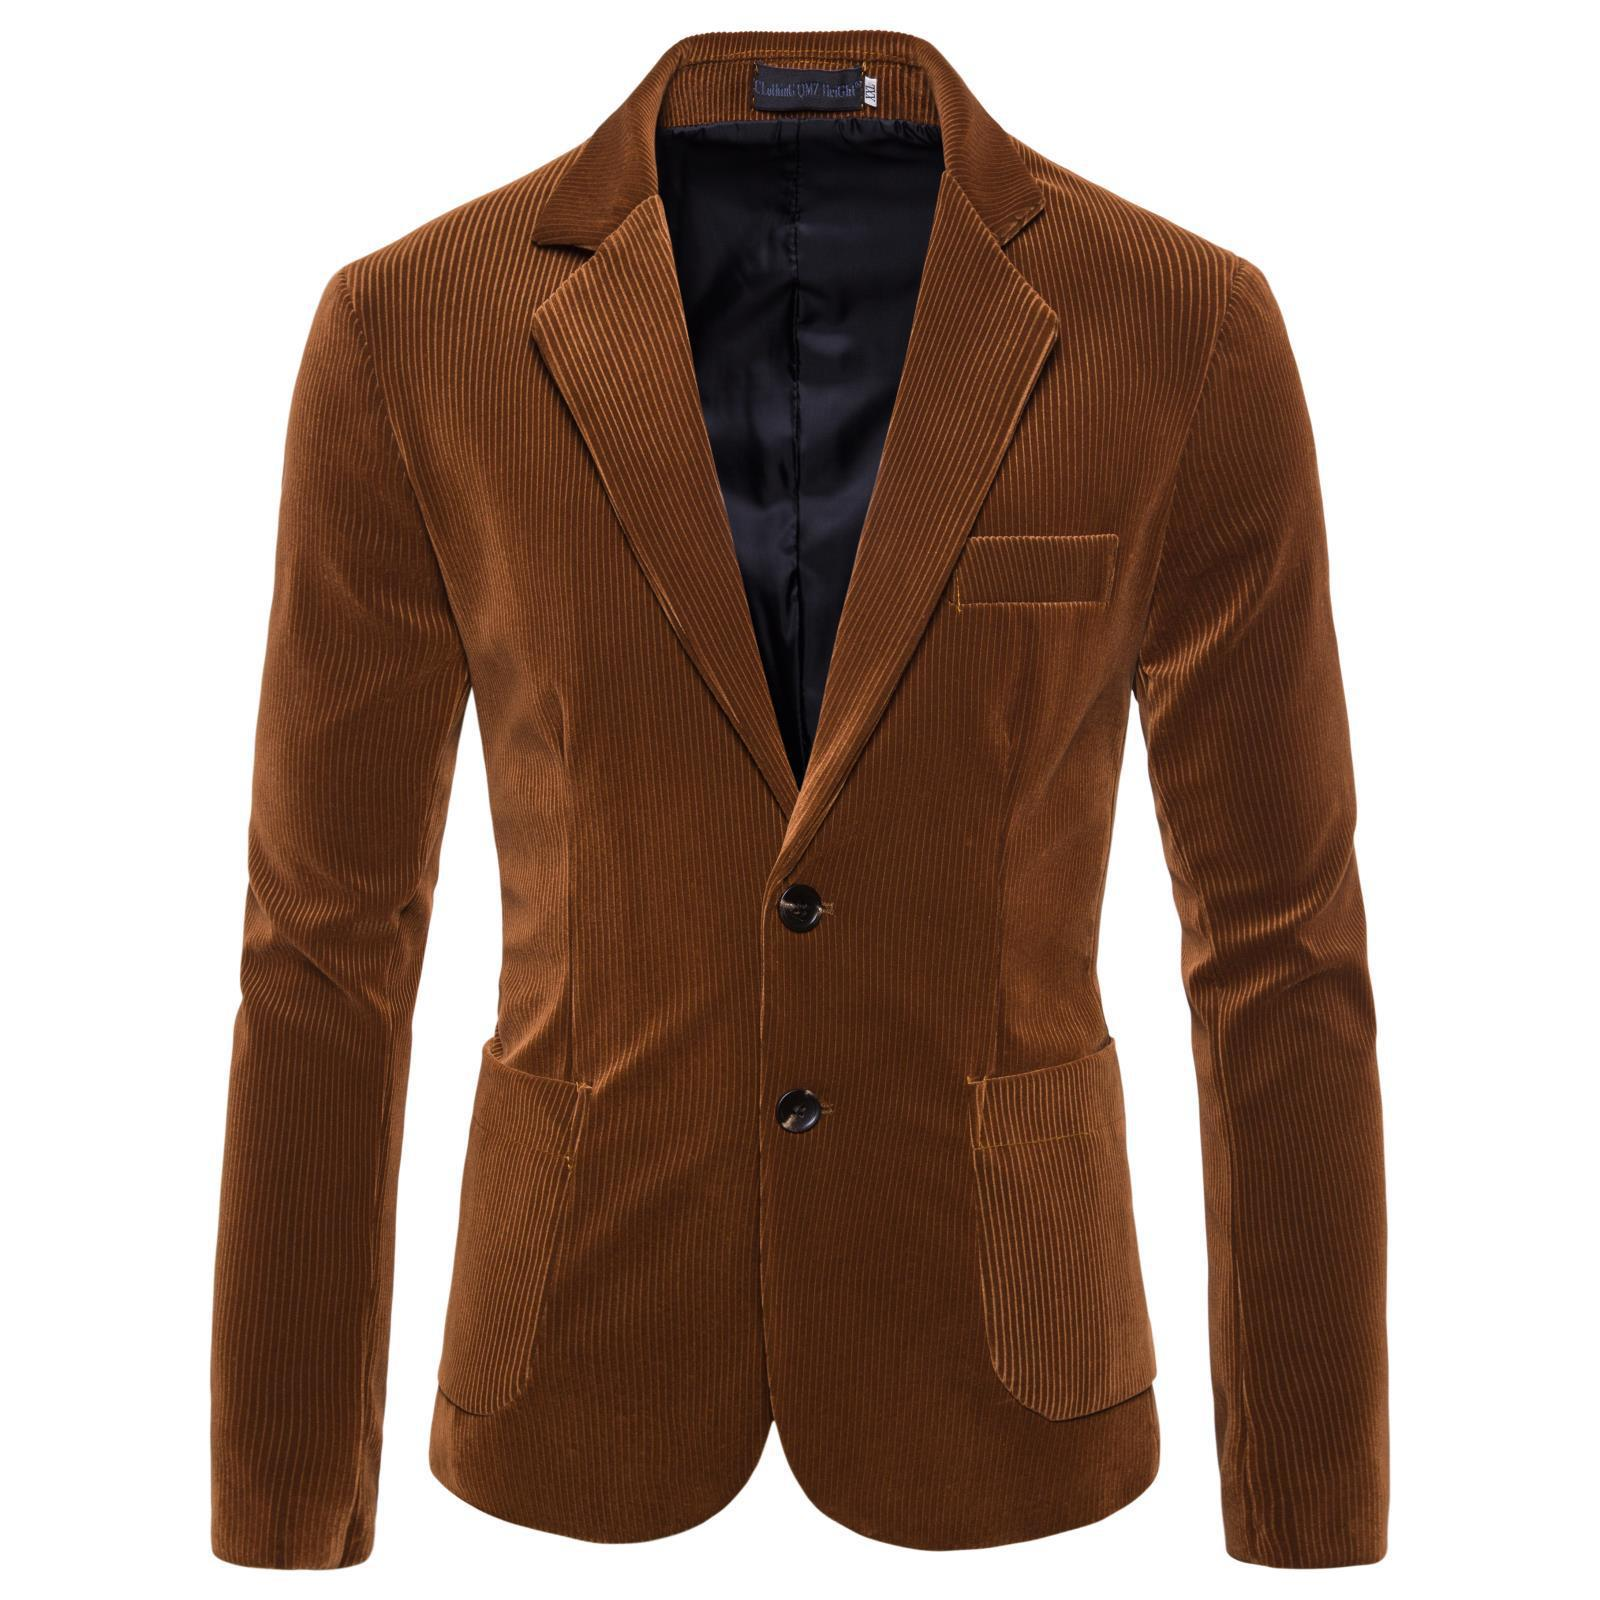 Dress Man's Suit Man 2019 Self-cultivation Fund Urine Single Xiqing Annual Tide Payment Suit